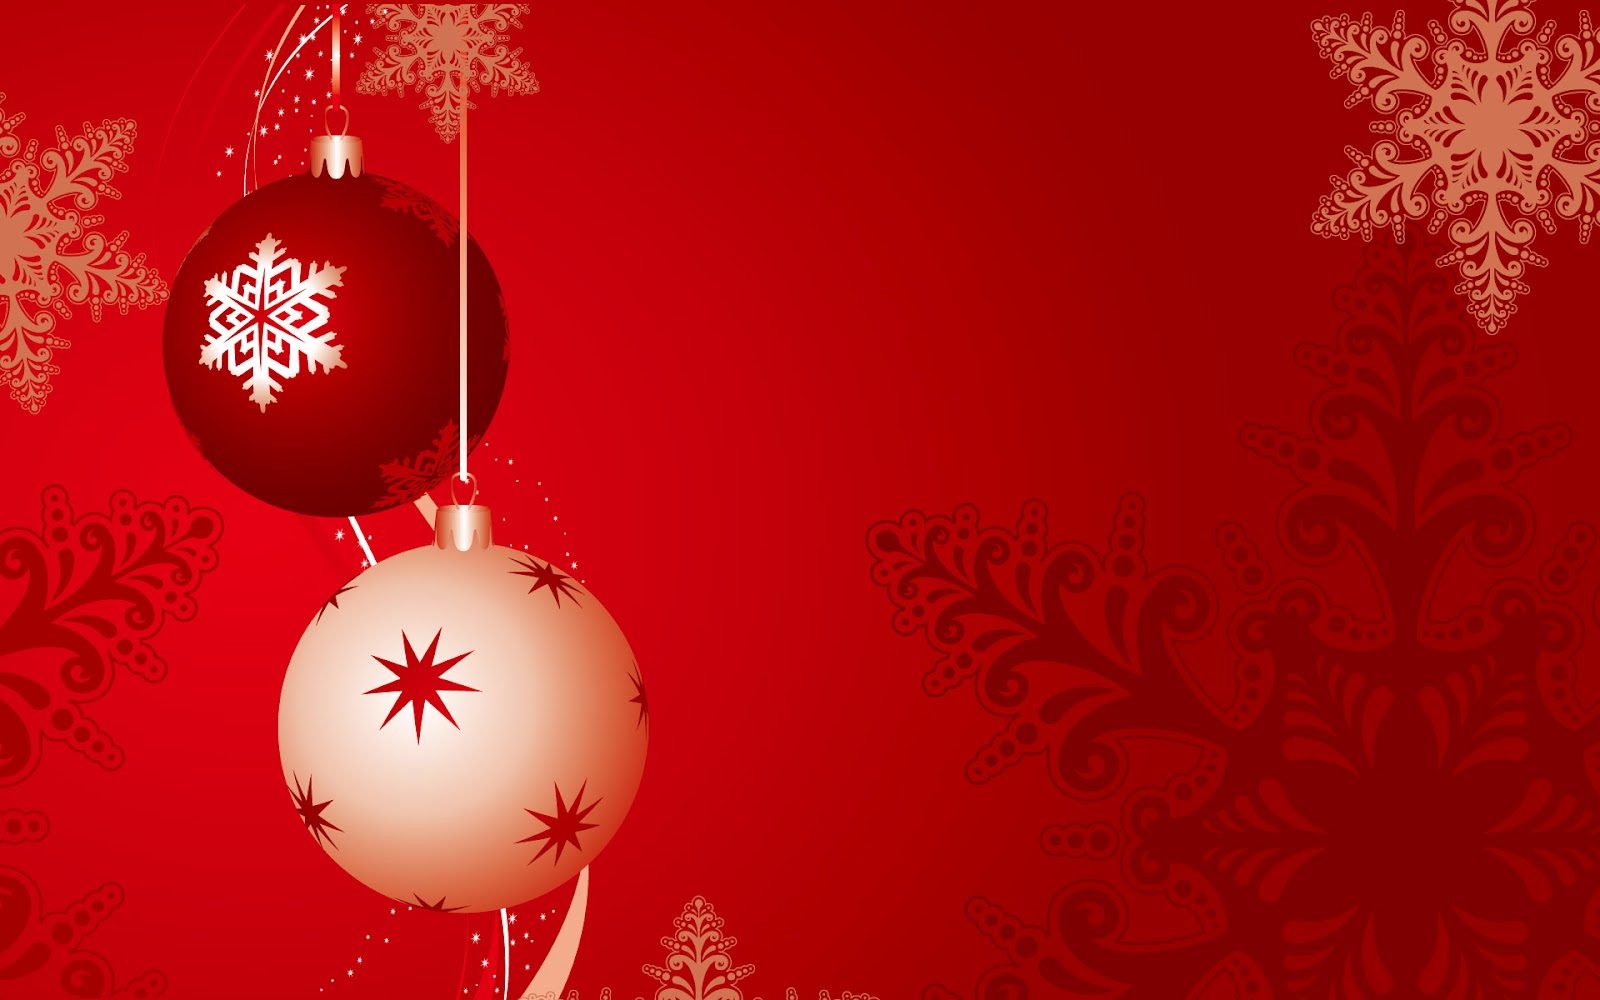 Cute Christmas Wallpaper 7911 Hd Wallpapers in Celebrations   Imagesci 1600x1000